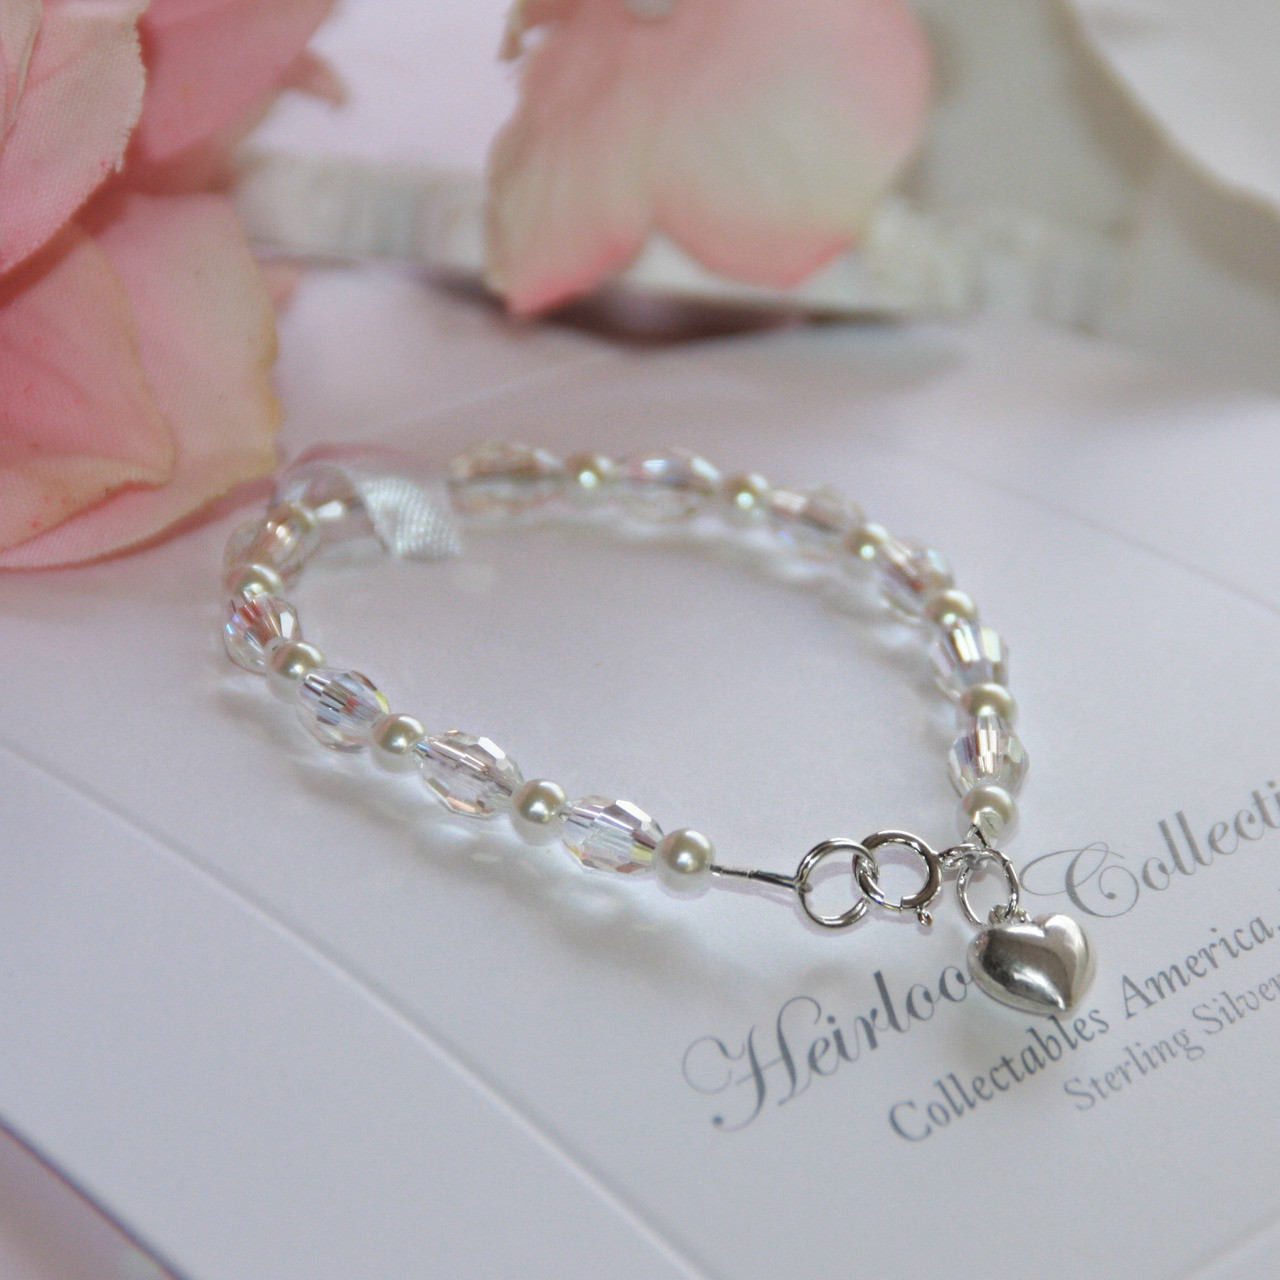 "STG-146HT  Crystals and Pearls 5"" a Favorite Bracelet! Sterling Silver"